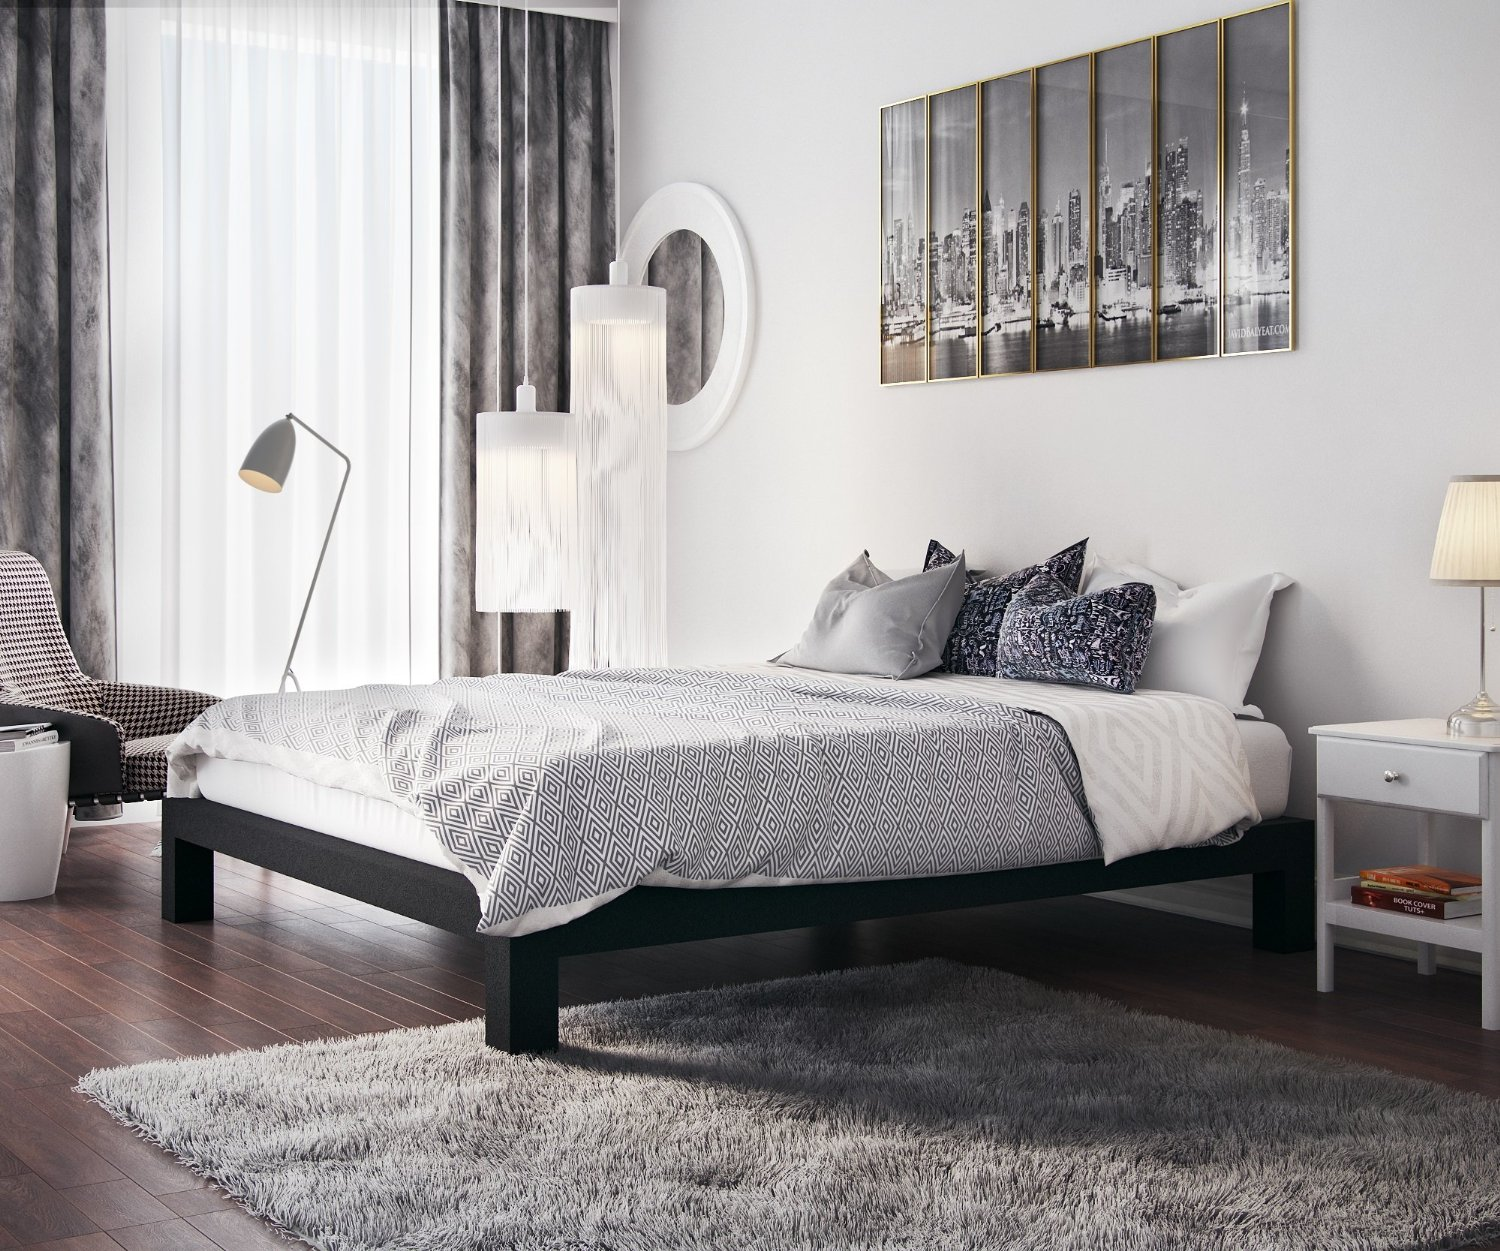 Image of Platform Bed